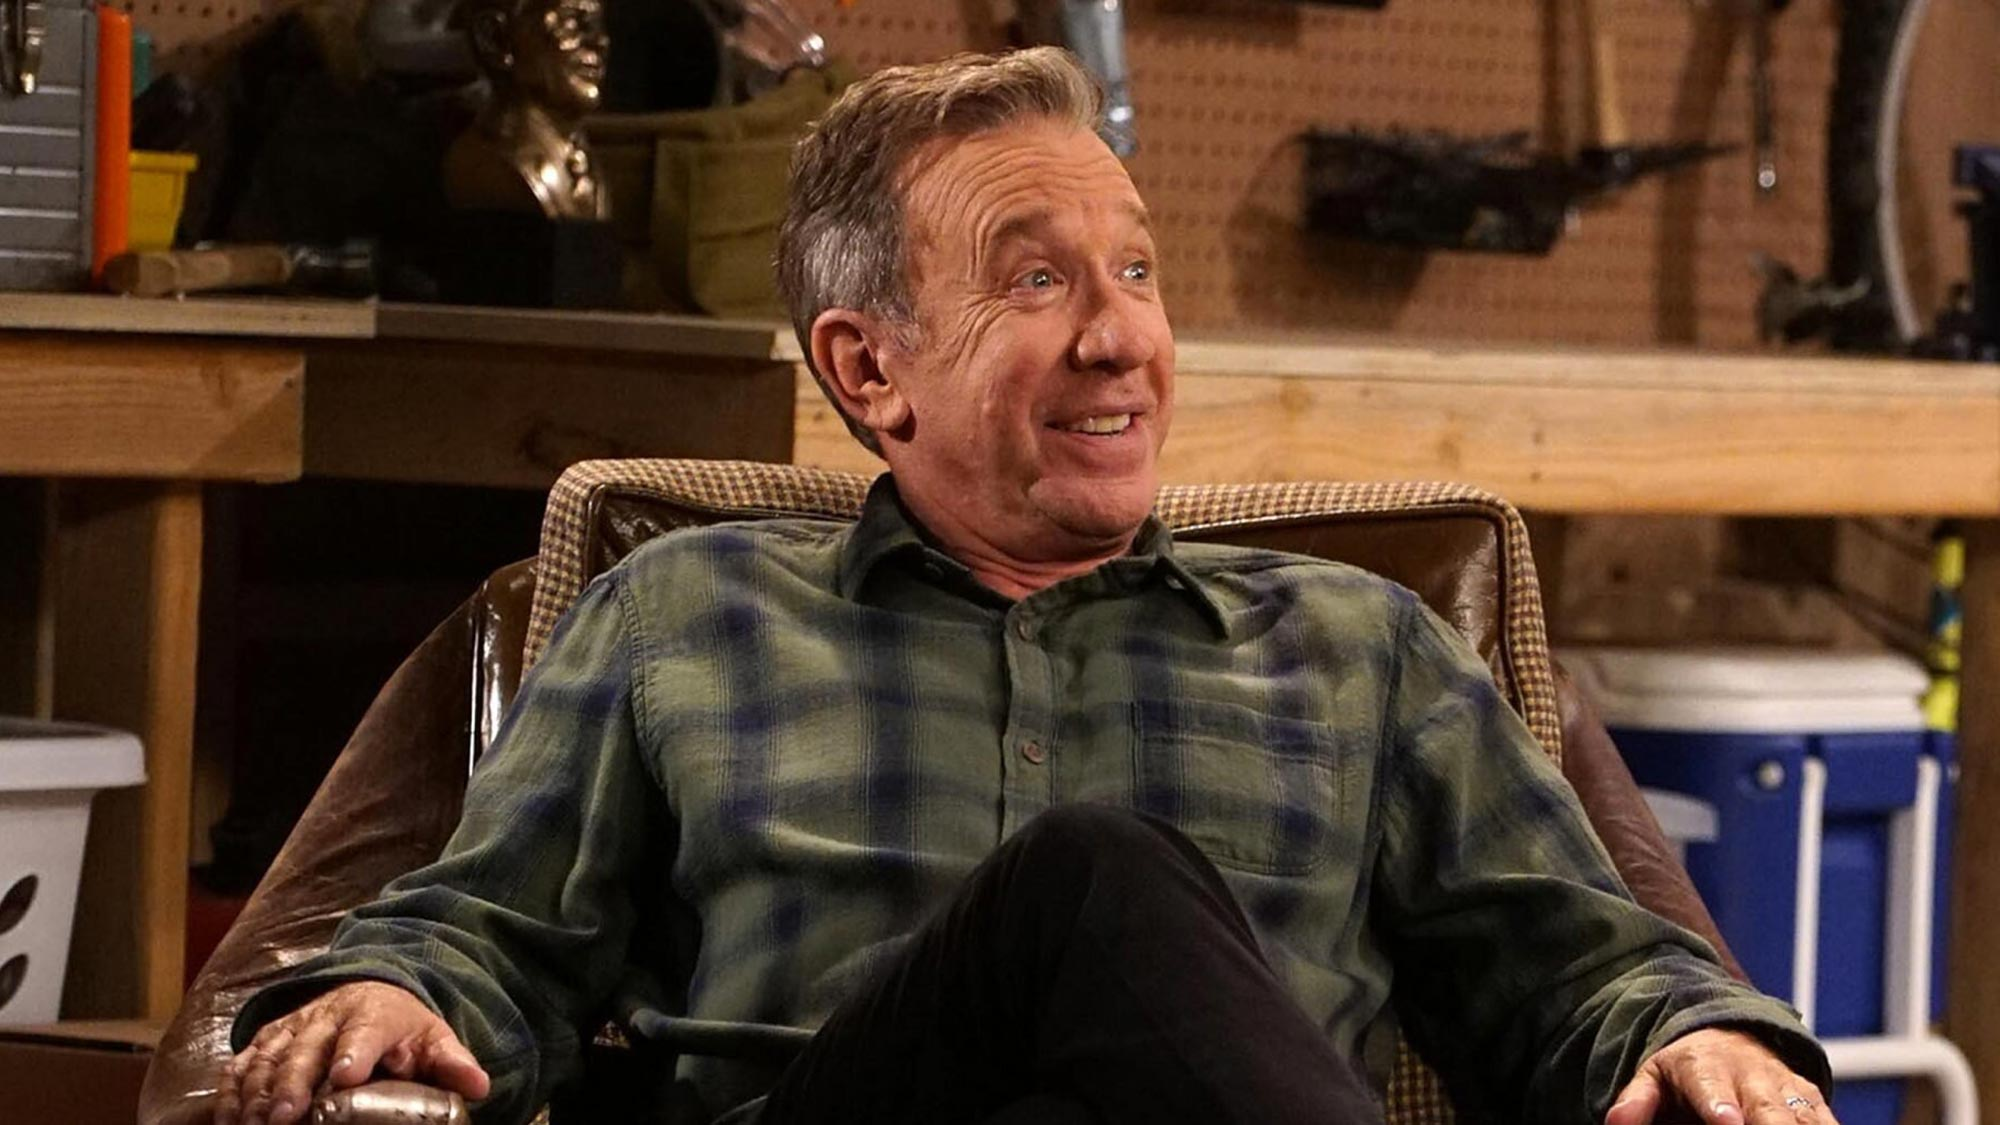 Canceled TV shows: Last Man Standing on Fox